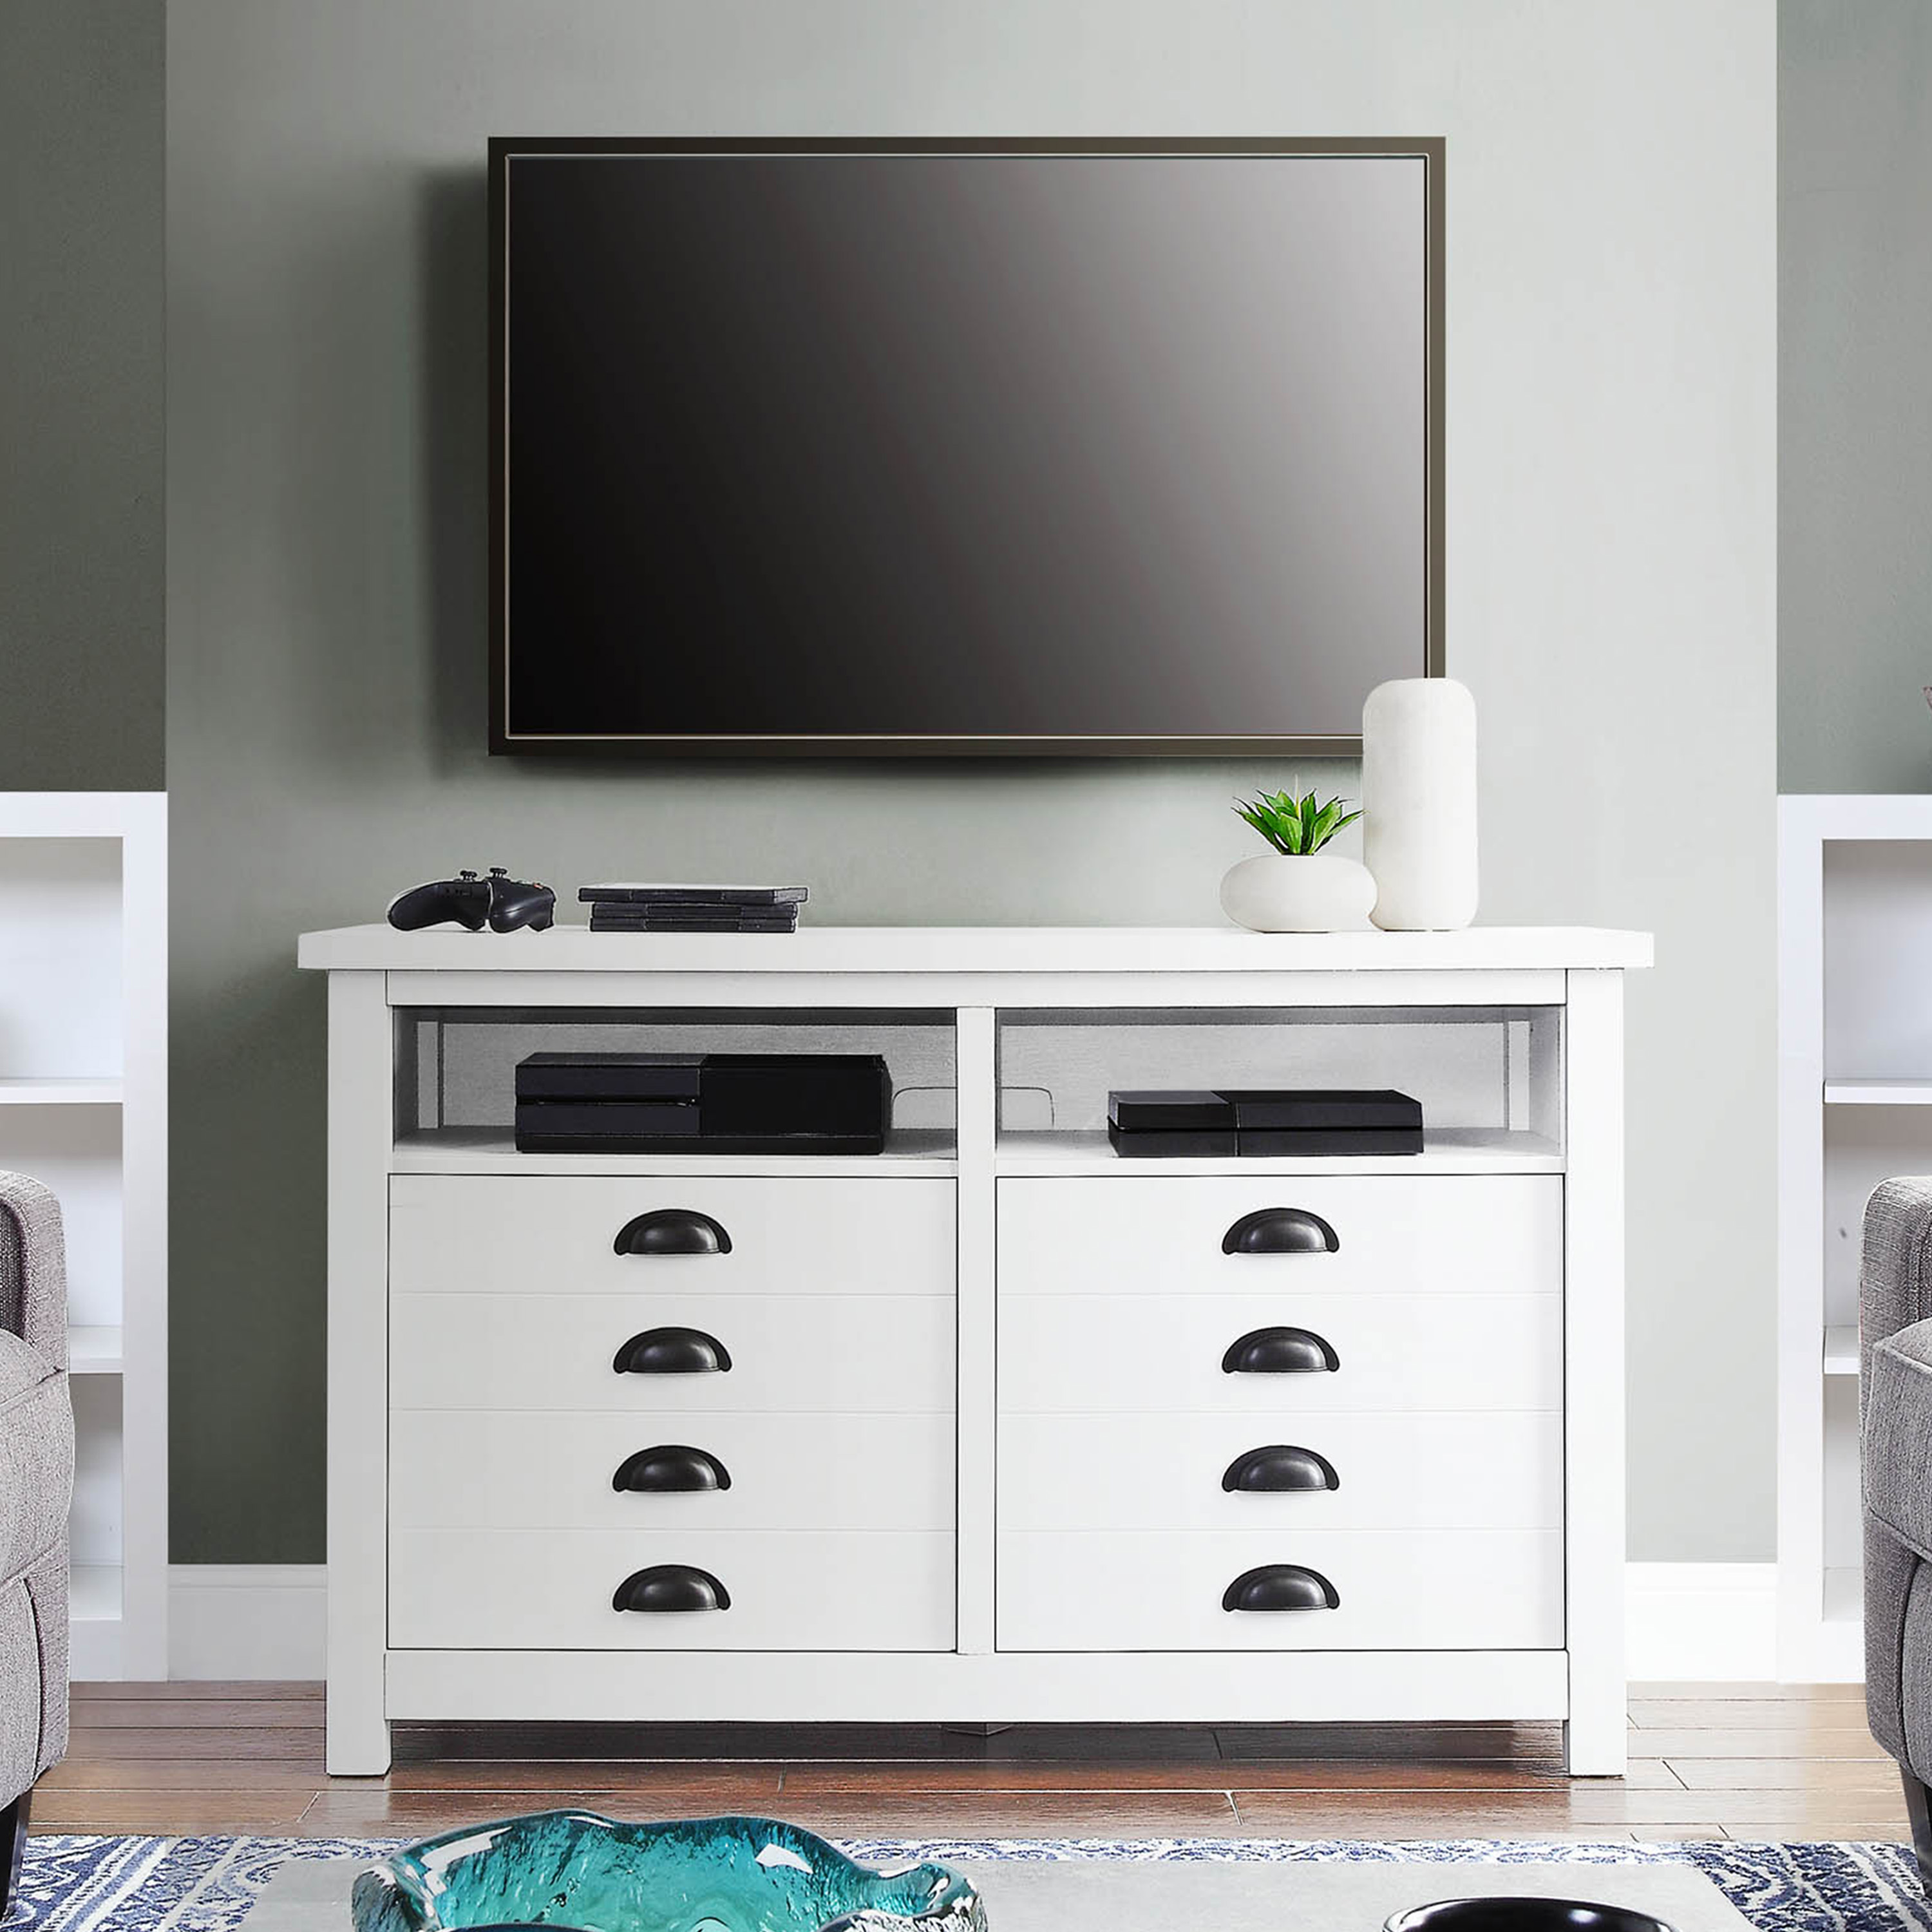 Better Homes Gardens Granary Modern Farmhouse Tv Stand For Tvs Up To 55 White Walmart Com Walmart Com